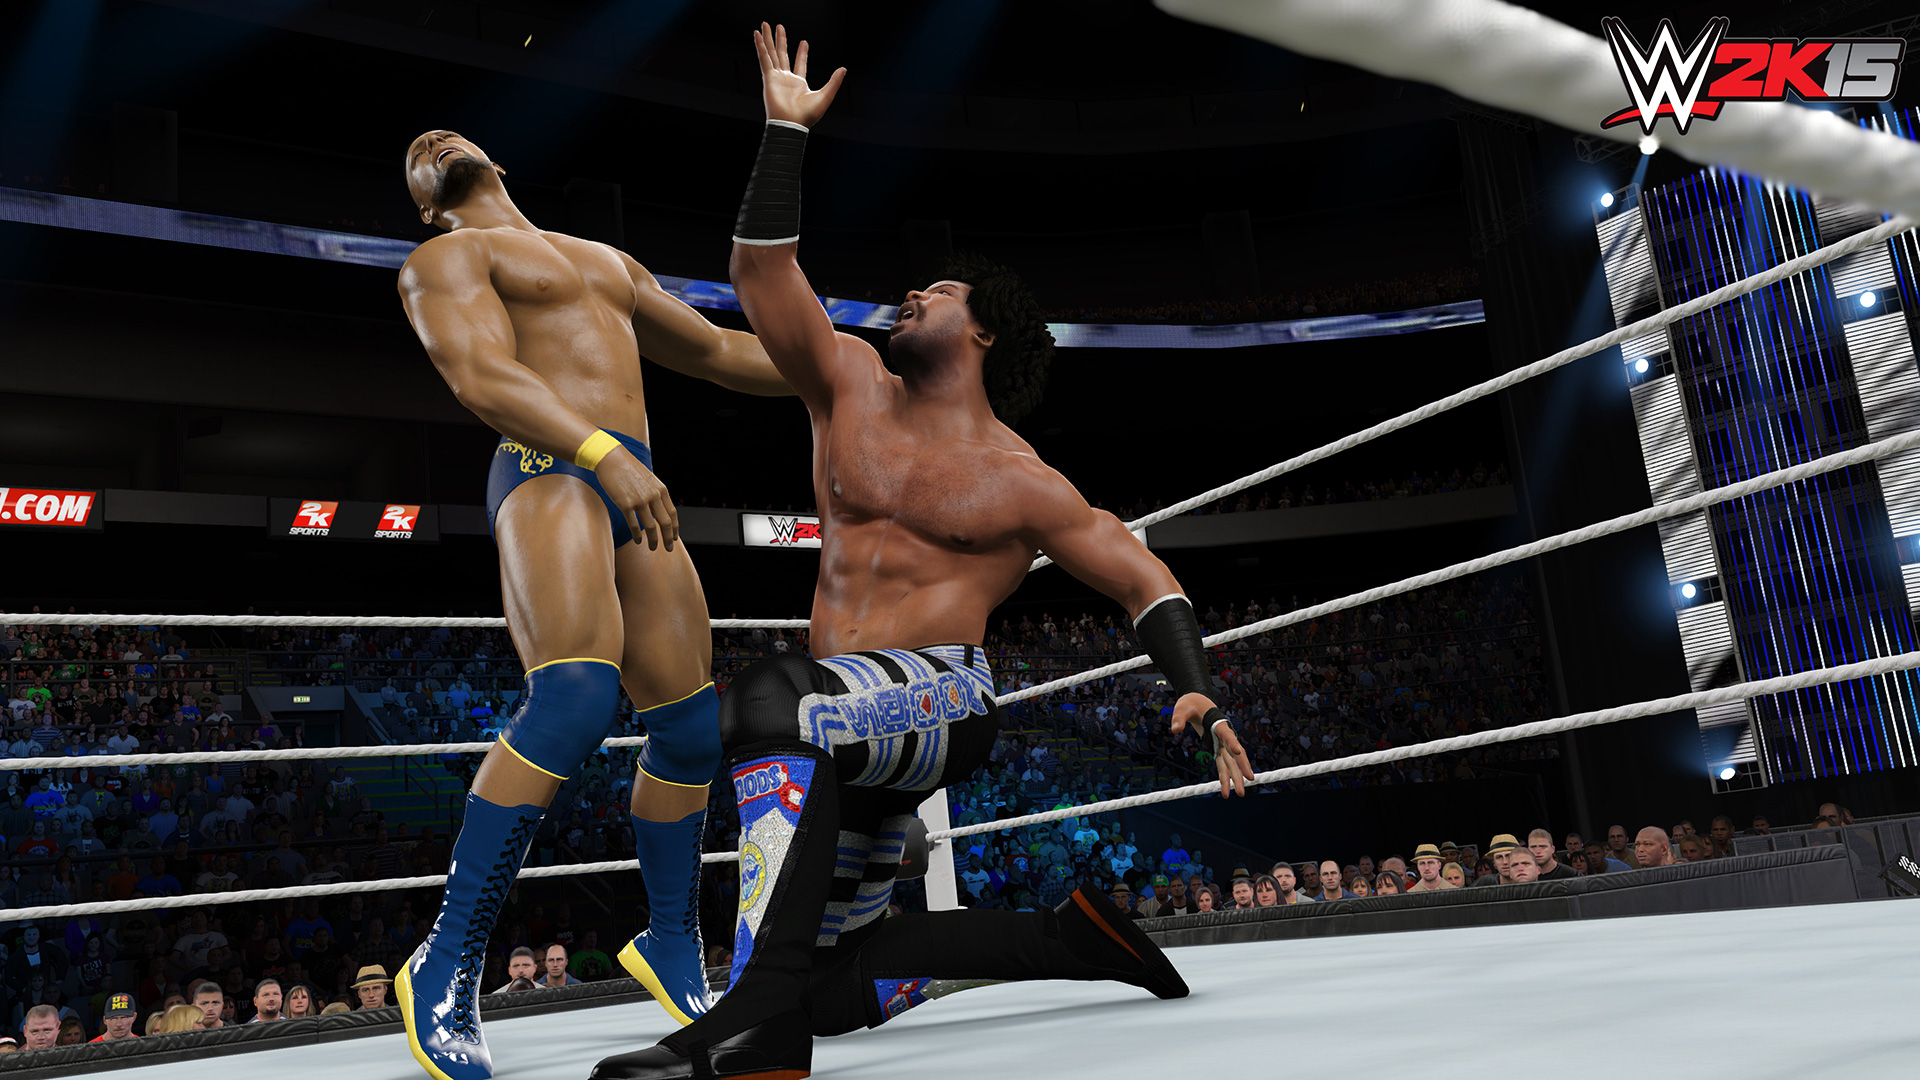 Rise up through the WWE ranks in WWE 2K15's career mode